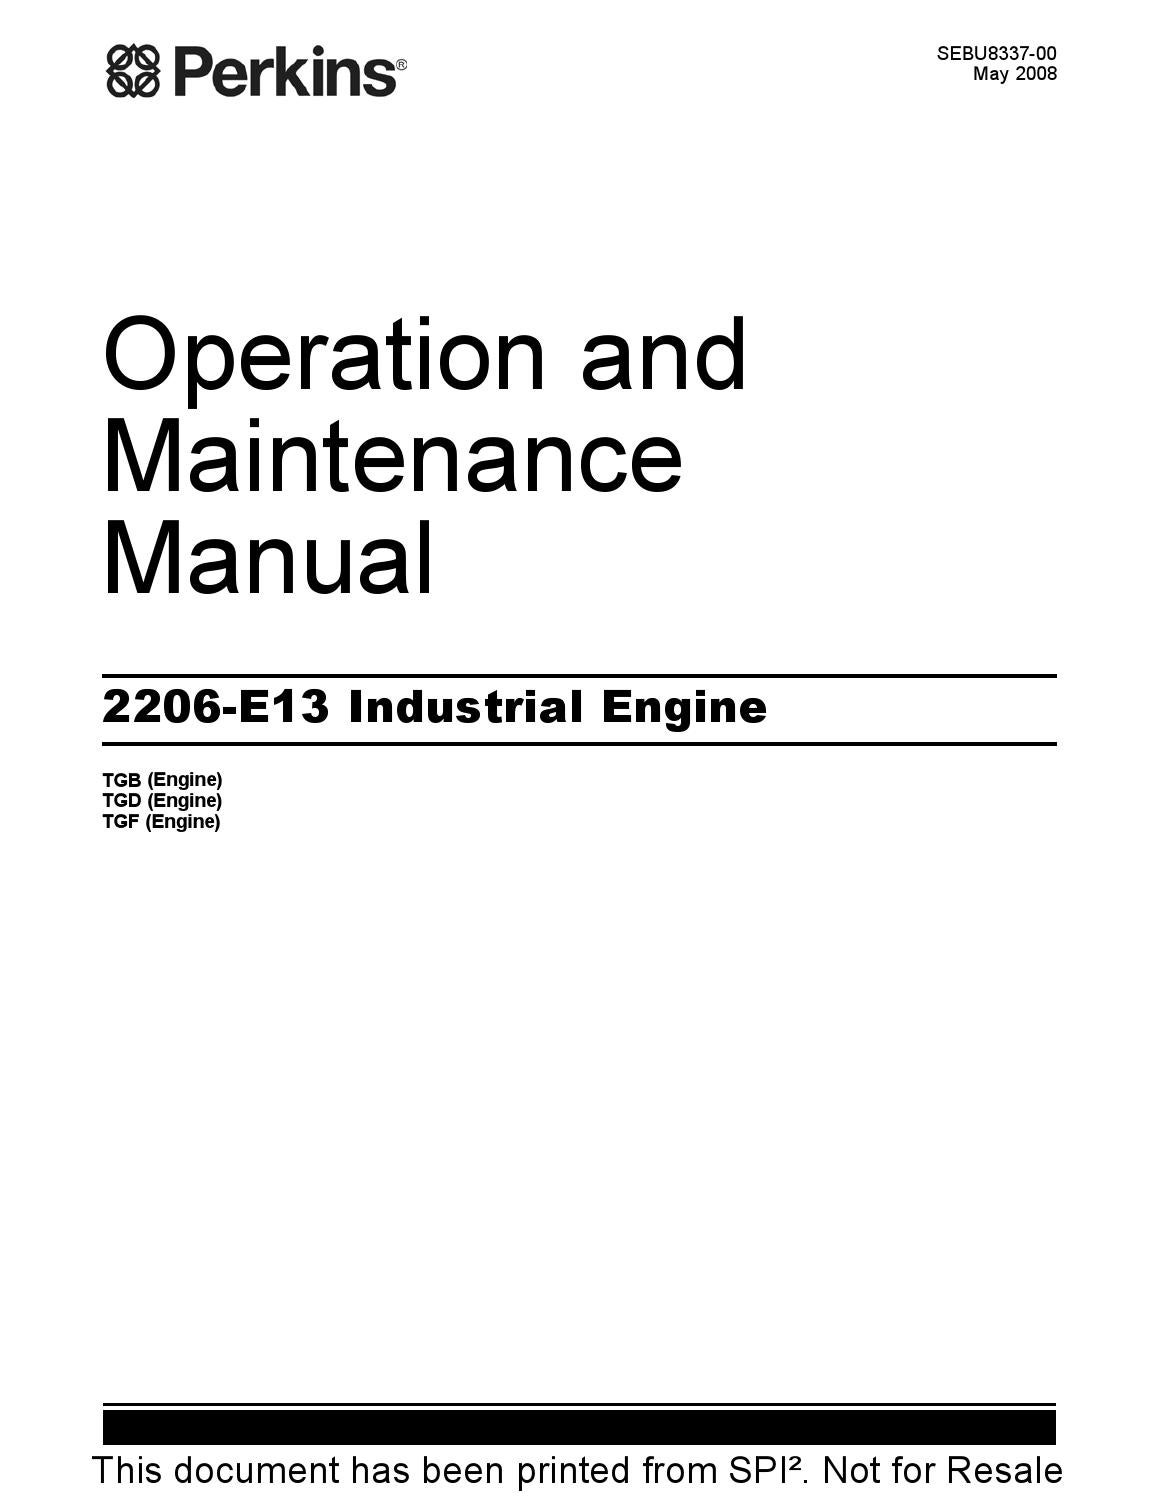 operation and maintenance manual for 2206 e13 industrial engine by rh issuu com